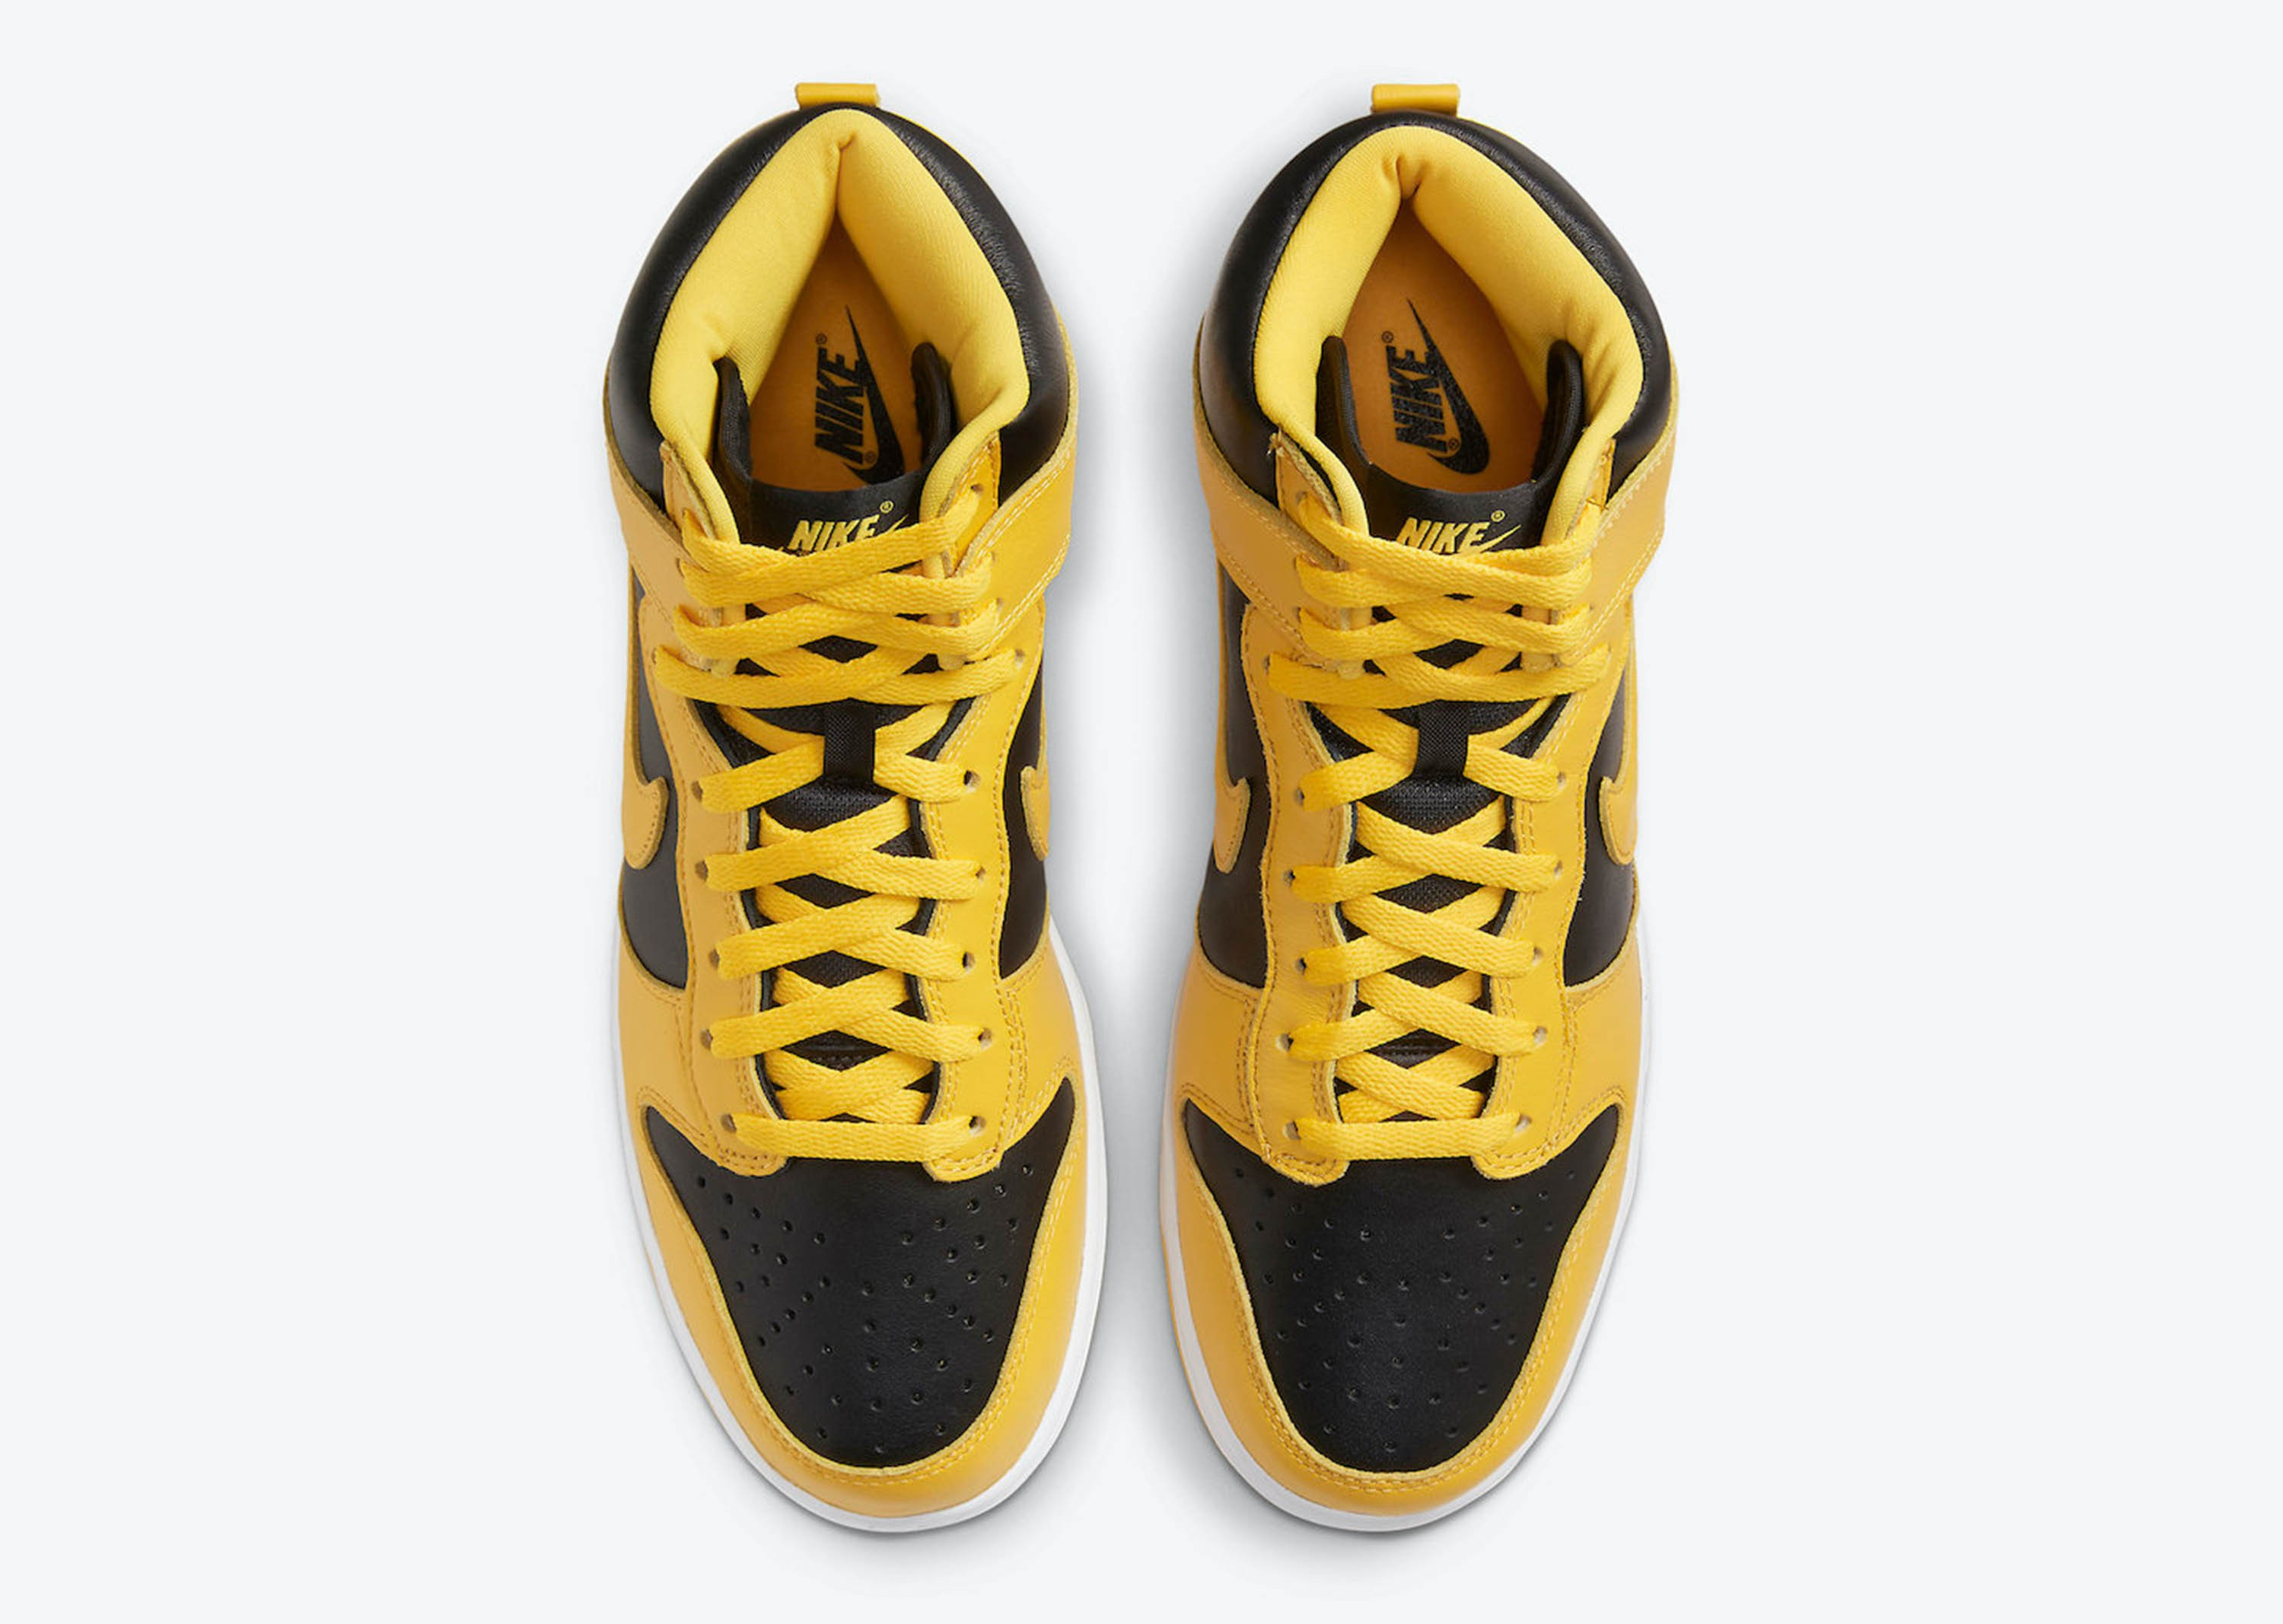 Dunk_High_Varsity_Maize_0003_Nike-Dunk-High-Varsity-Maize-CZ8149-002-Release-Date-Price-3